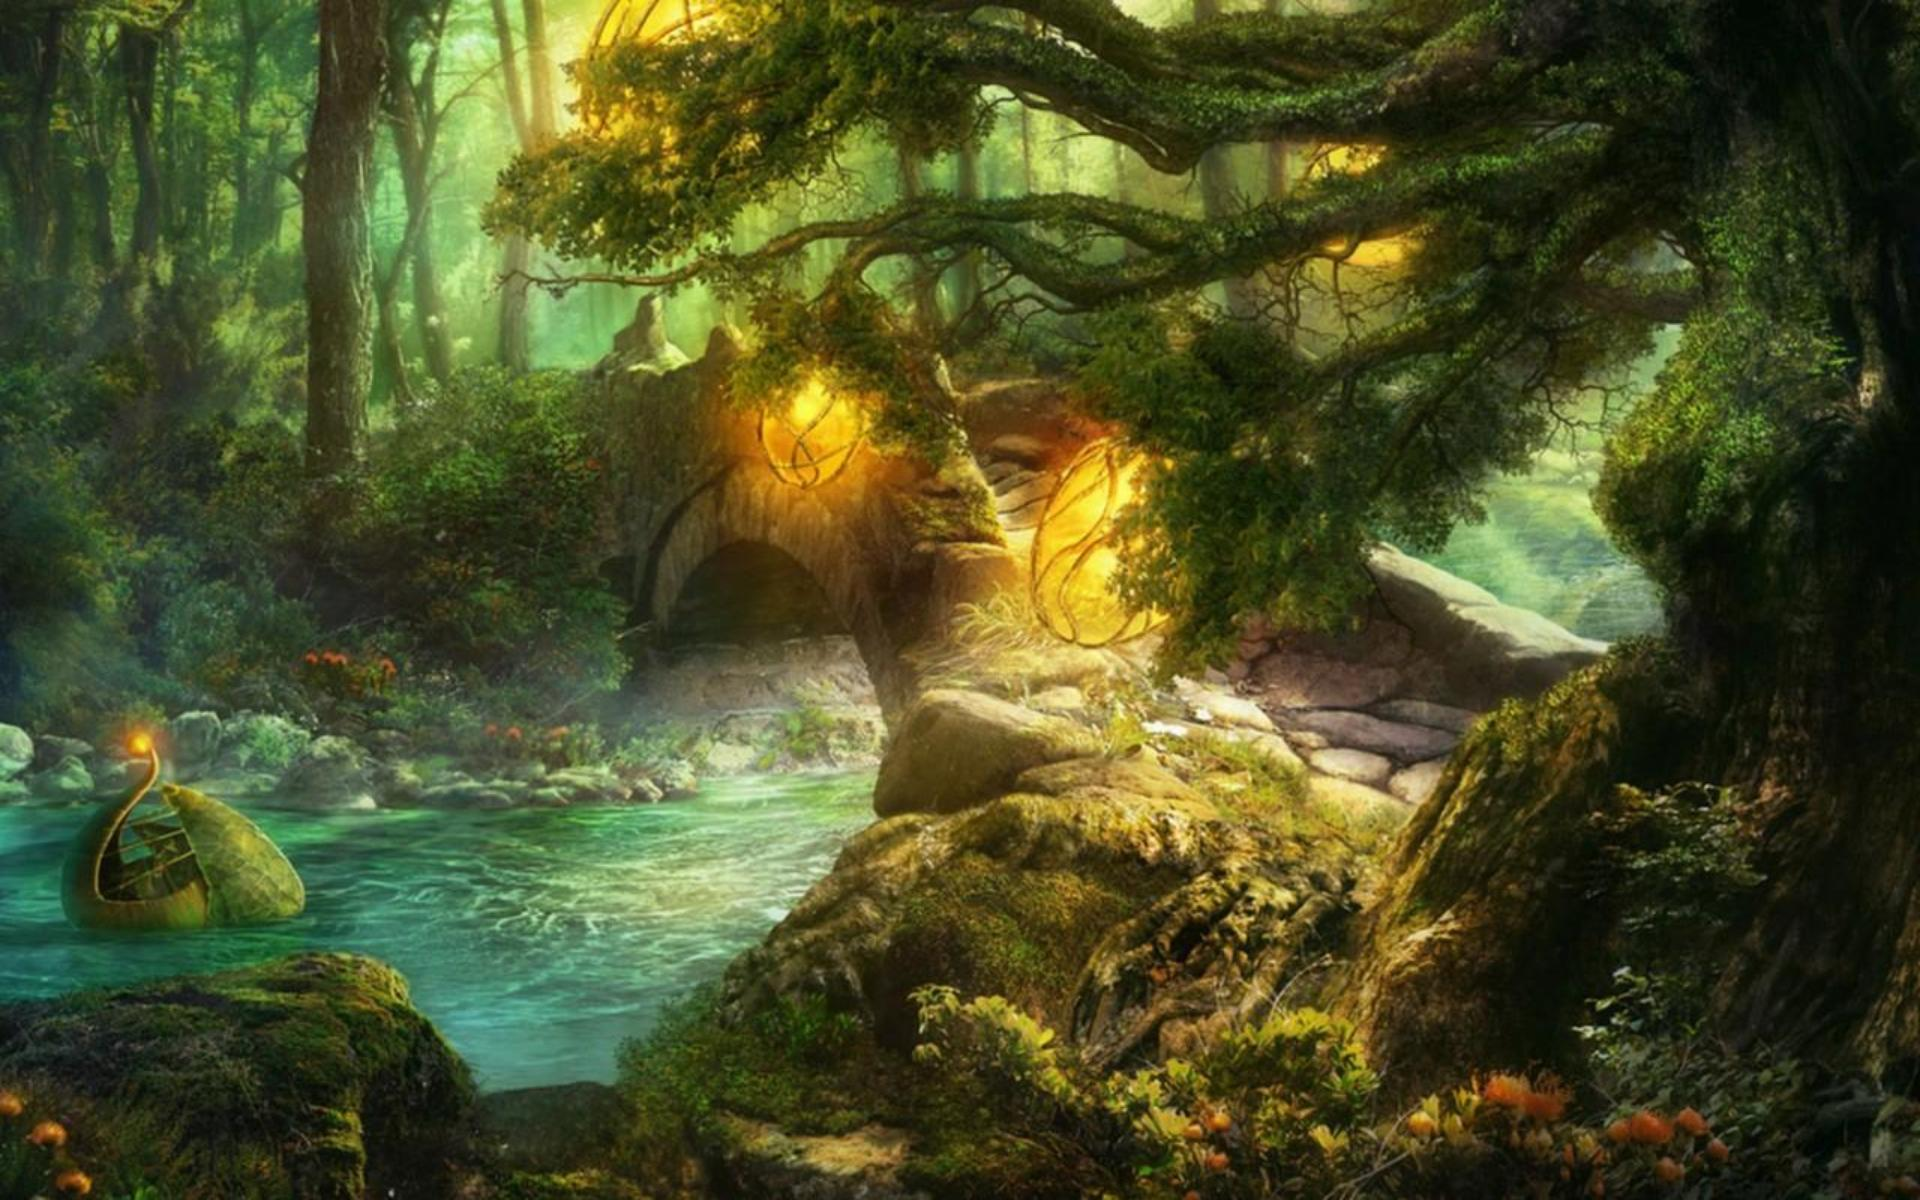 Fantasy images project nevermor - Magic land wallpaper ...